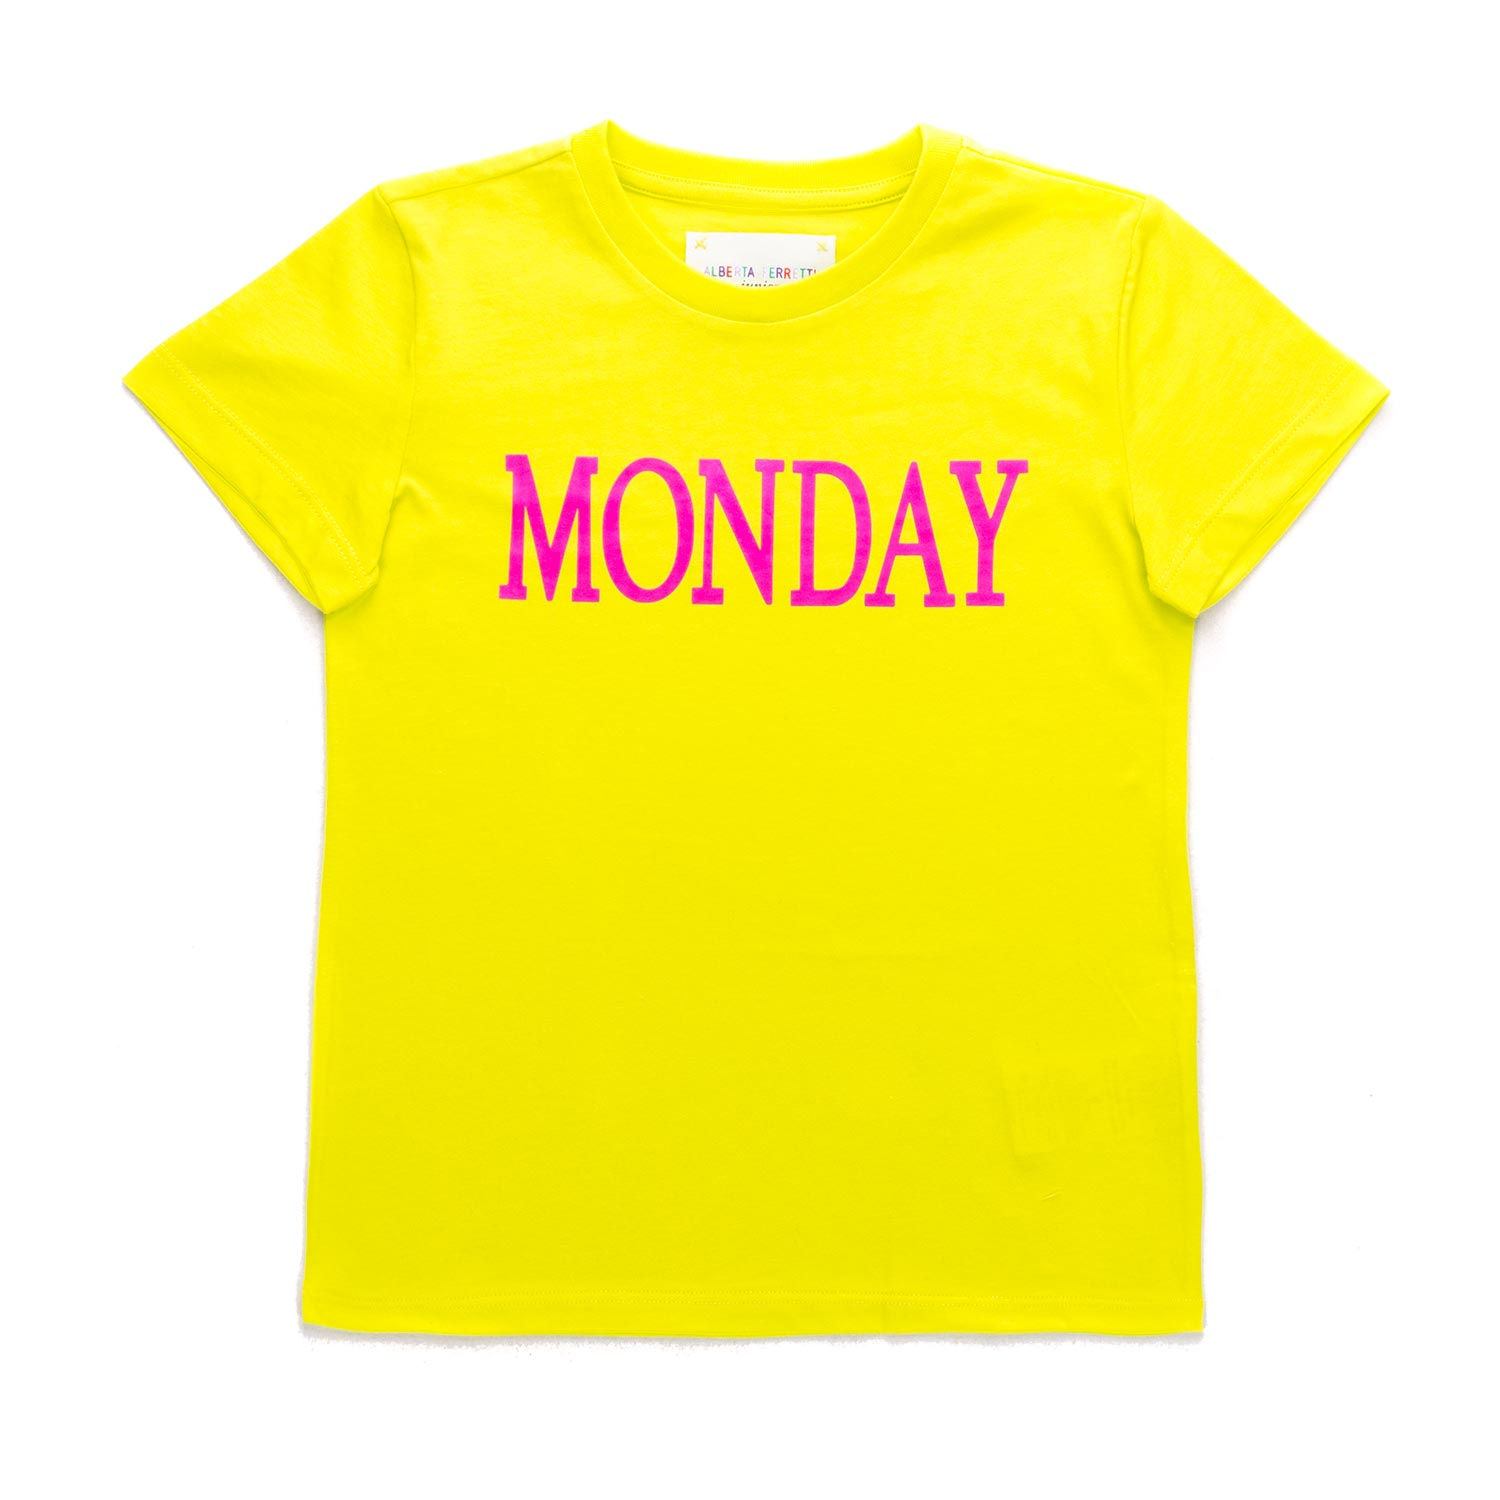 premium selection 31cda a0469 T-Shirt Monday Bambina Teen